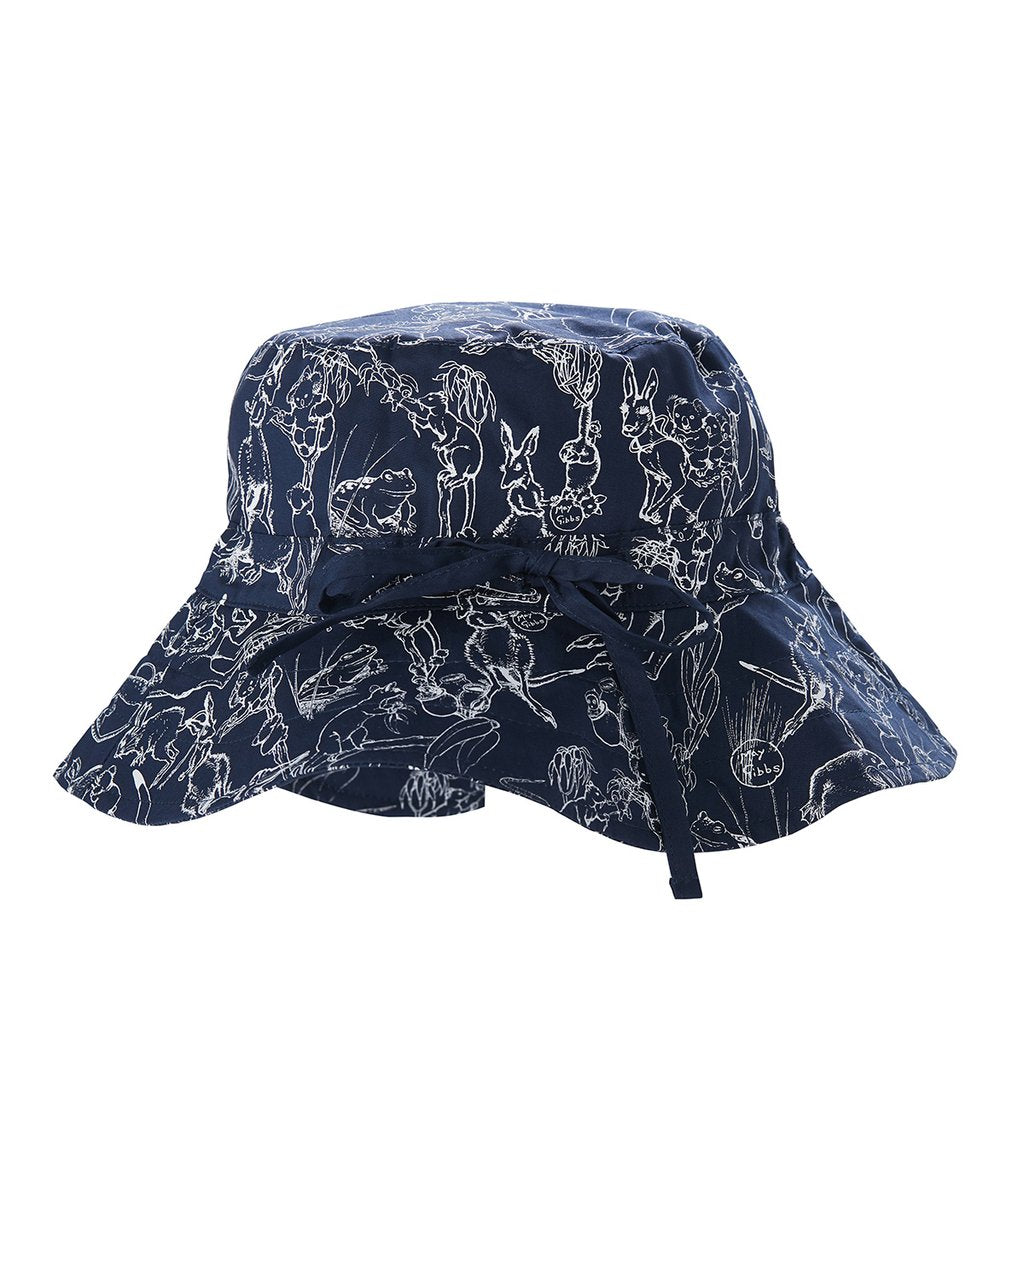 Walnut May Gibbs Sunny Sunhat - Bush Dance - Navy